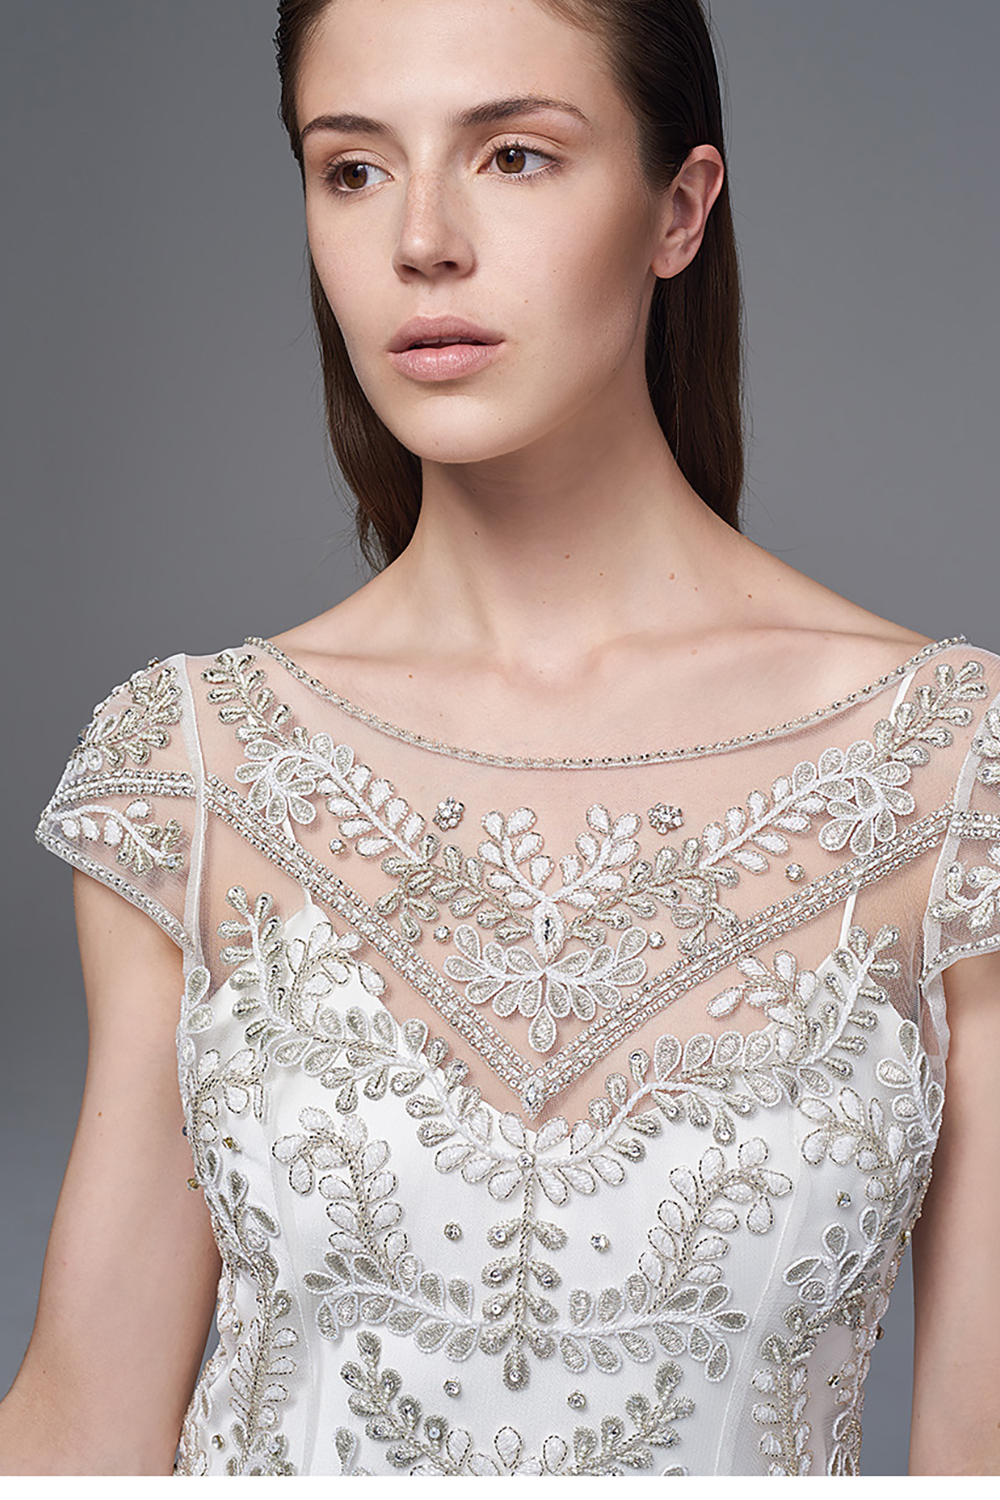 e1fe4877d5c7 ... CLASSIC IRIS SLIP. BRIDAL WEDDING DRESS BY HALFPENNY LONDON. THE  MARIANNE HAND BEADED AND EMBROIDERED DRESS WITH A LOW V BACK AND DROP WAIST  WORN